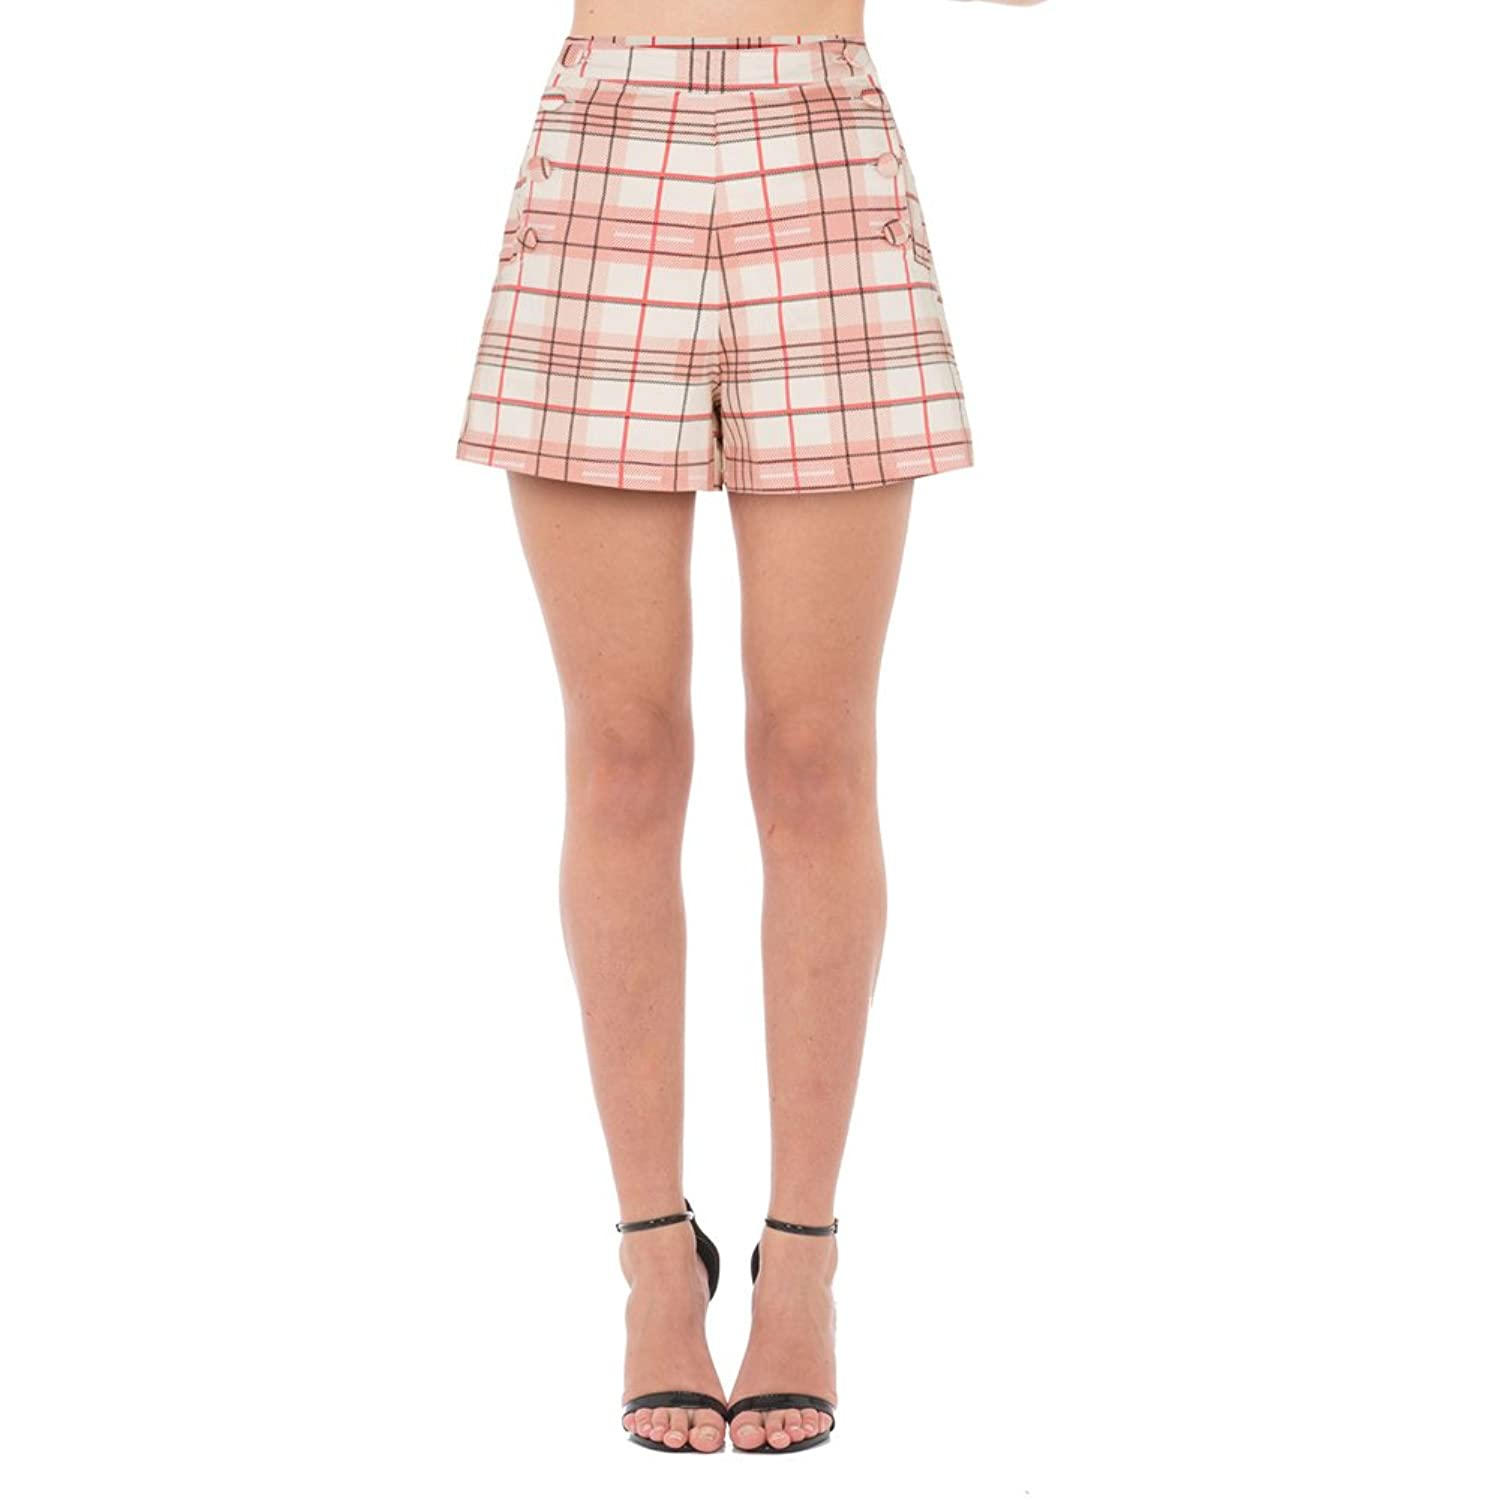 High Waisted Shorts- 1950s Vintage, Pinup, Rockabilly Womens Voodoo Vixen Kathy Plaid High Waist Shorts Pink $36.99 AT vintagedancer.com